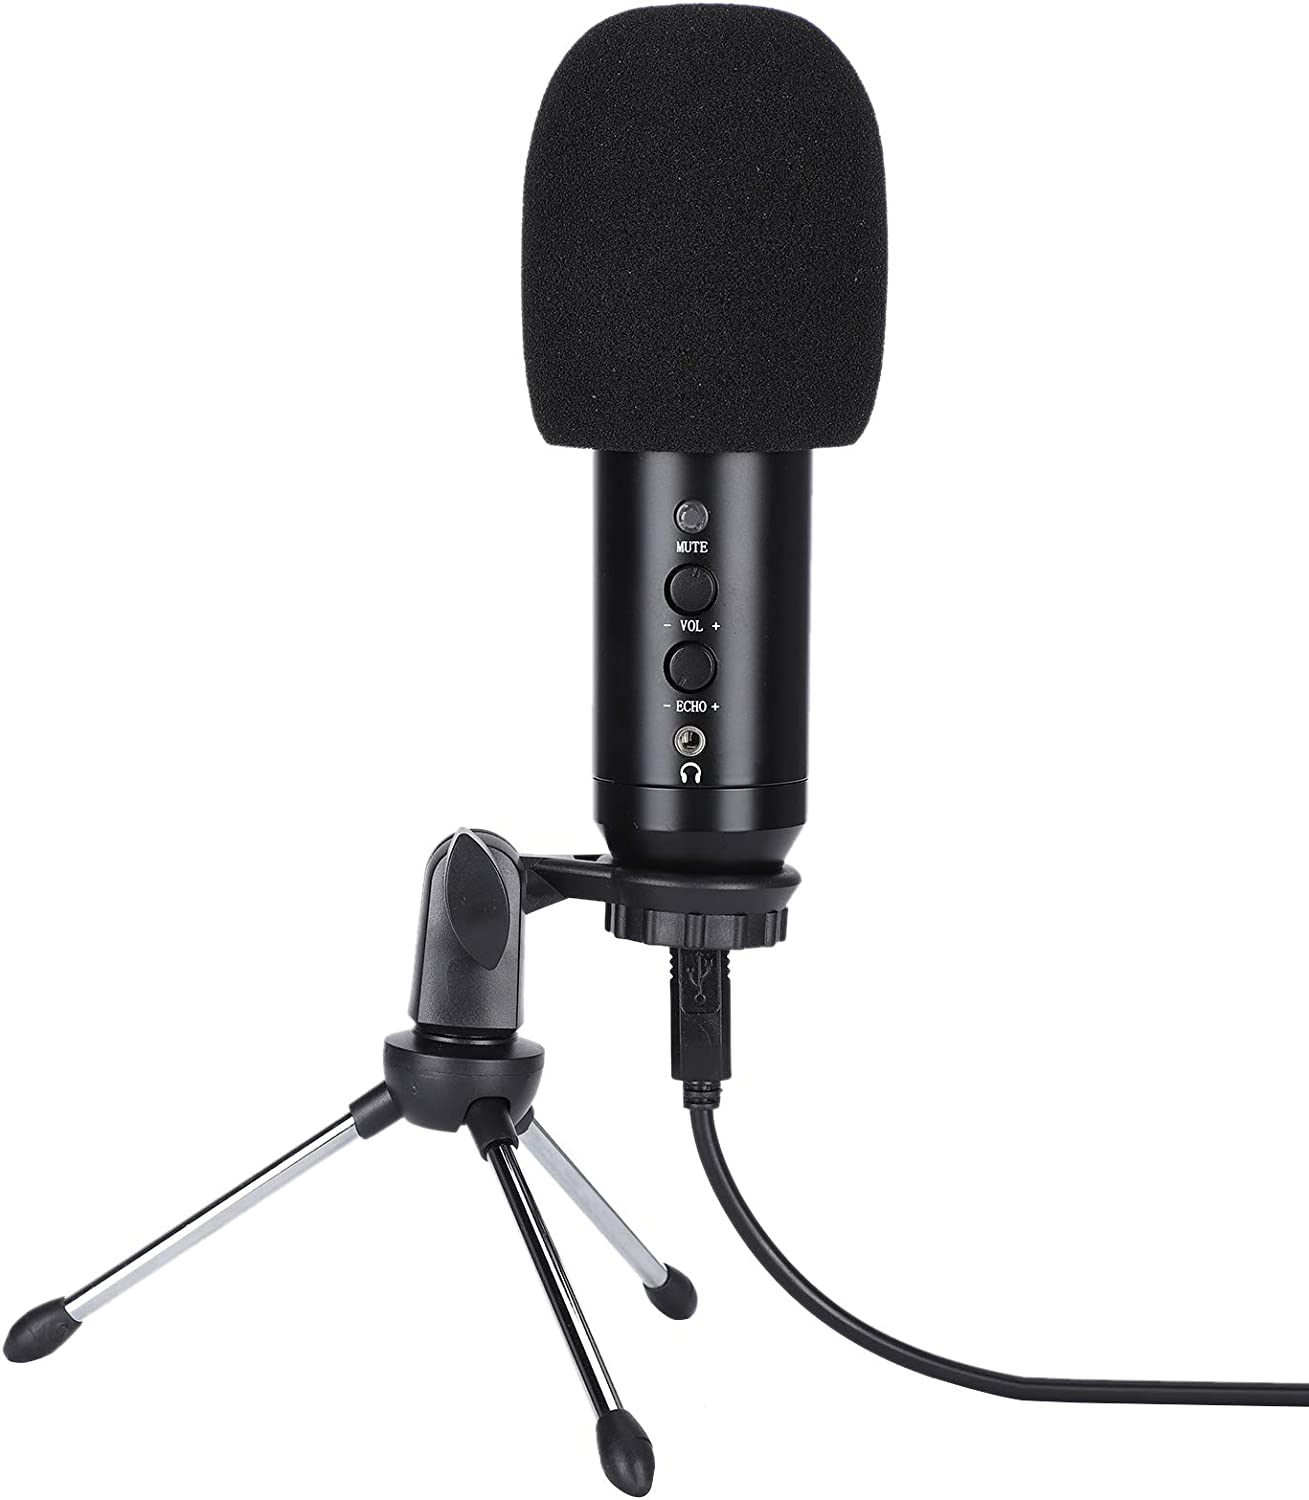 SALUTUY USB Microphone Plug and Alternative dealer BM-500 Condenser Play Cardioid Max 50% OFF